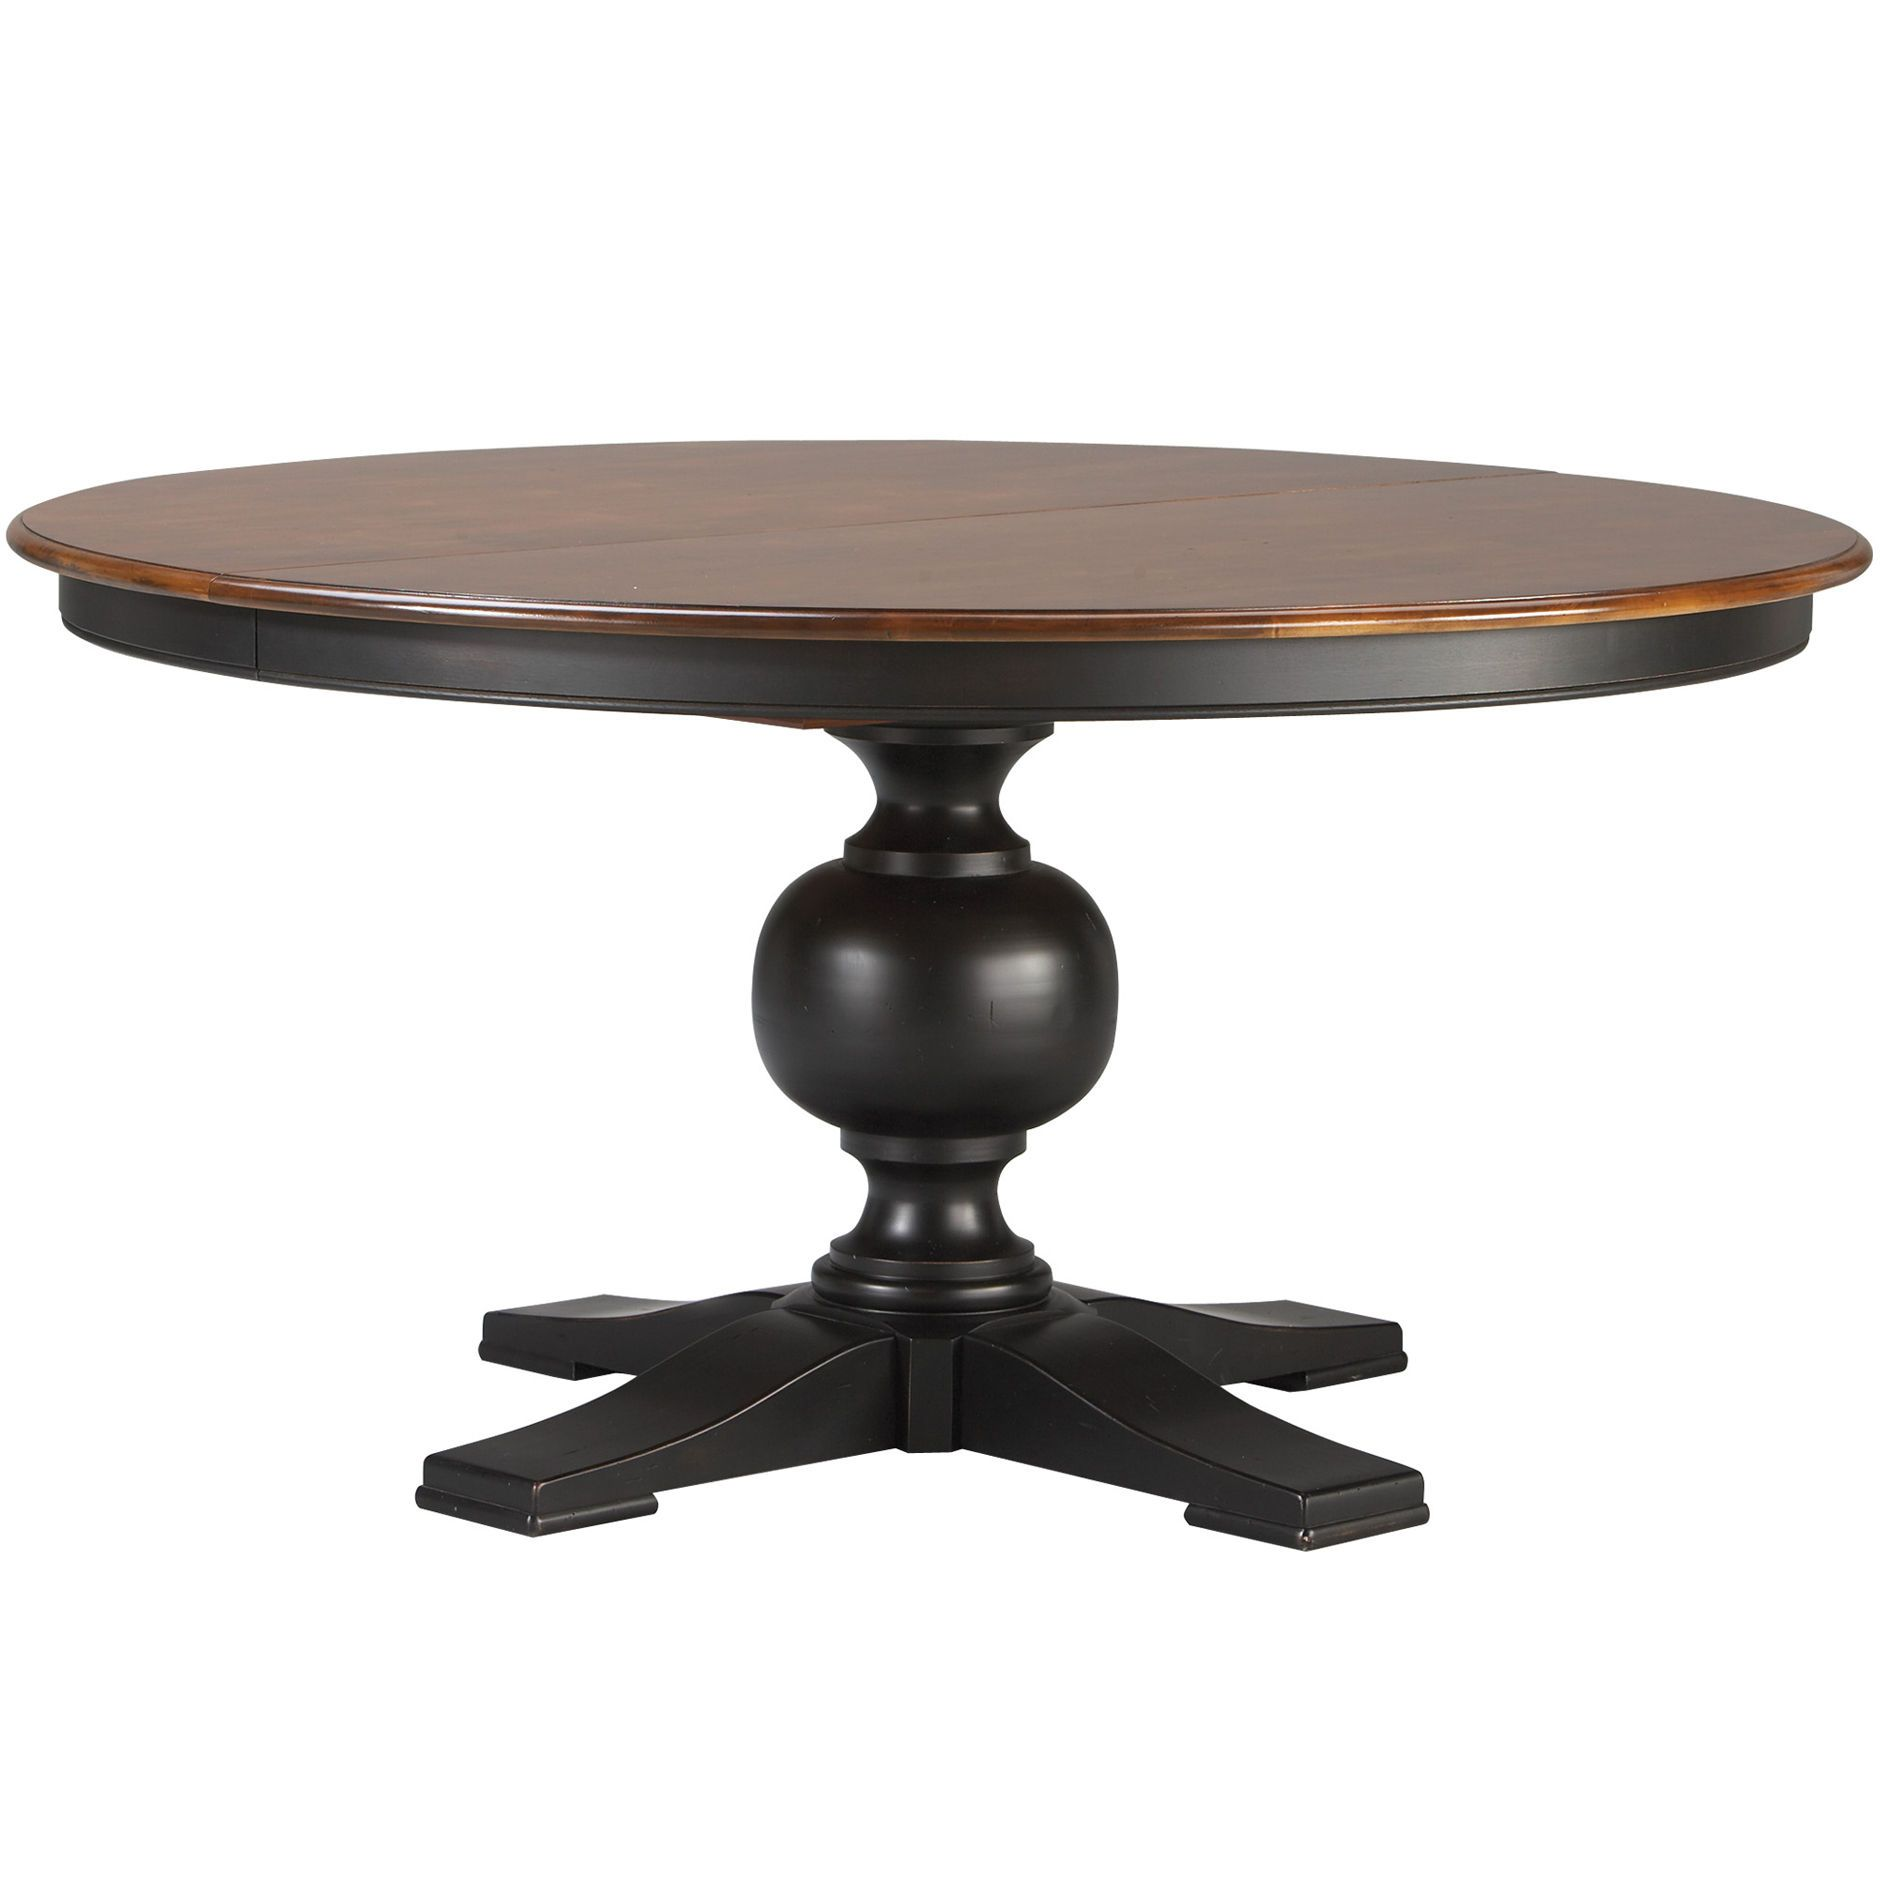 Cooper round dining table ethan allen i like the two for Round kitchen table with leaf